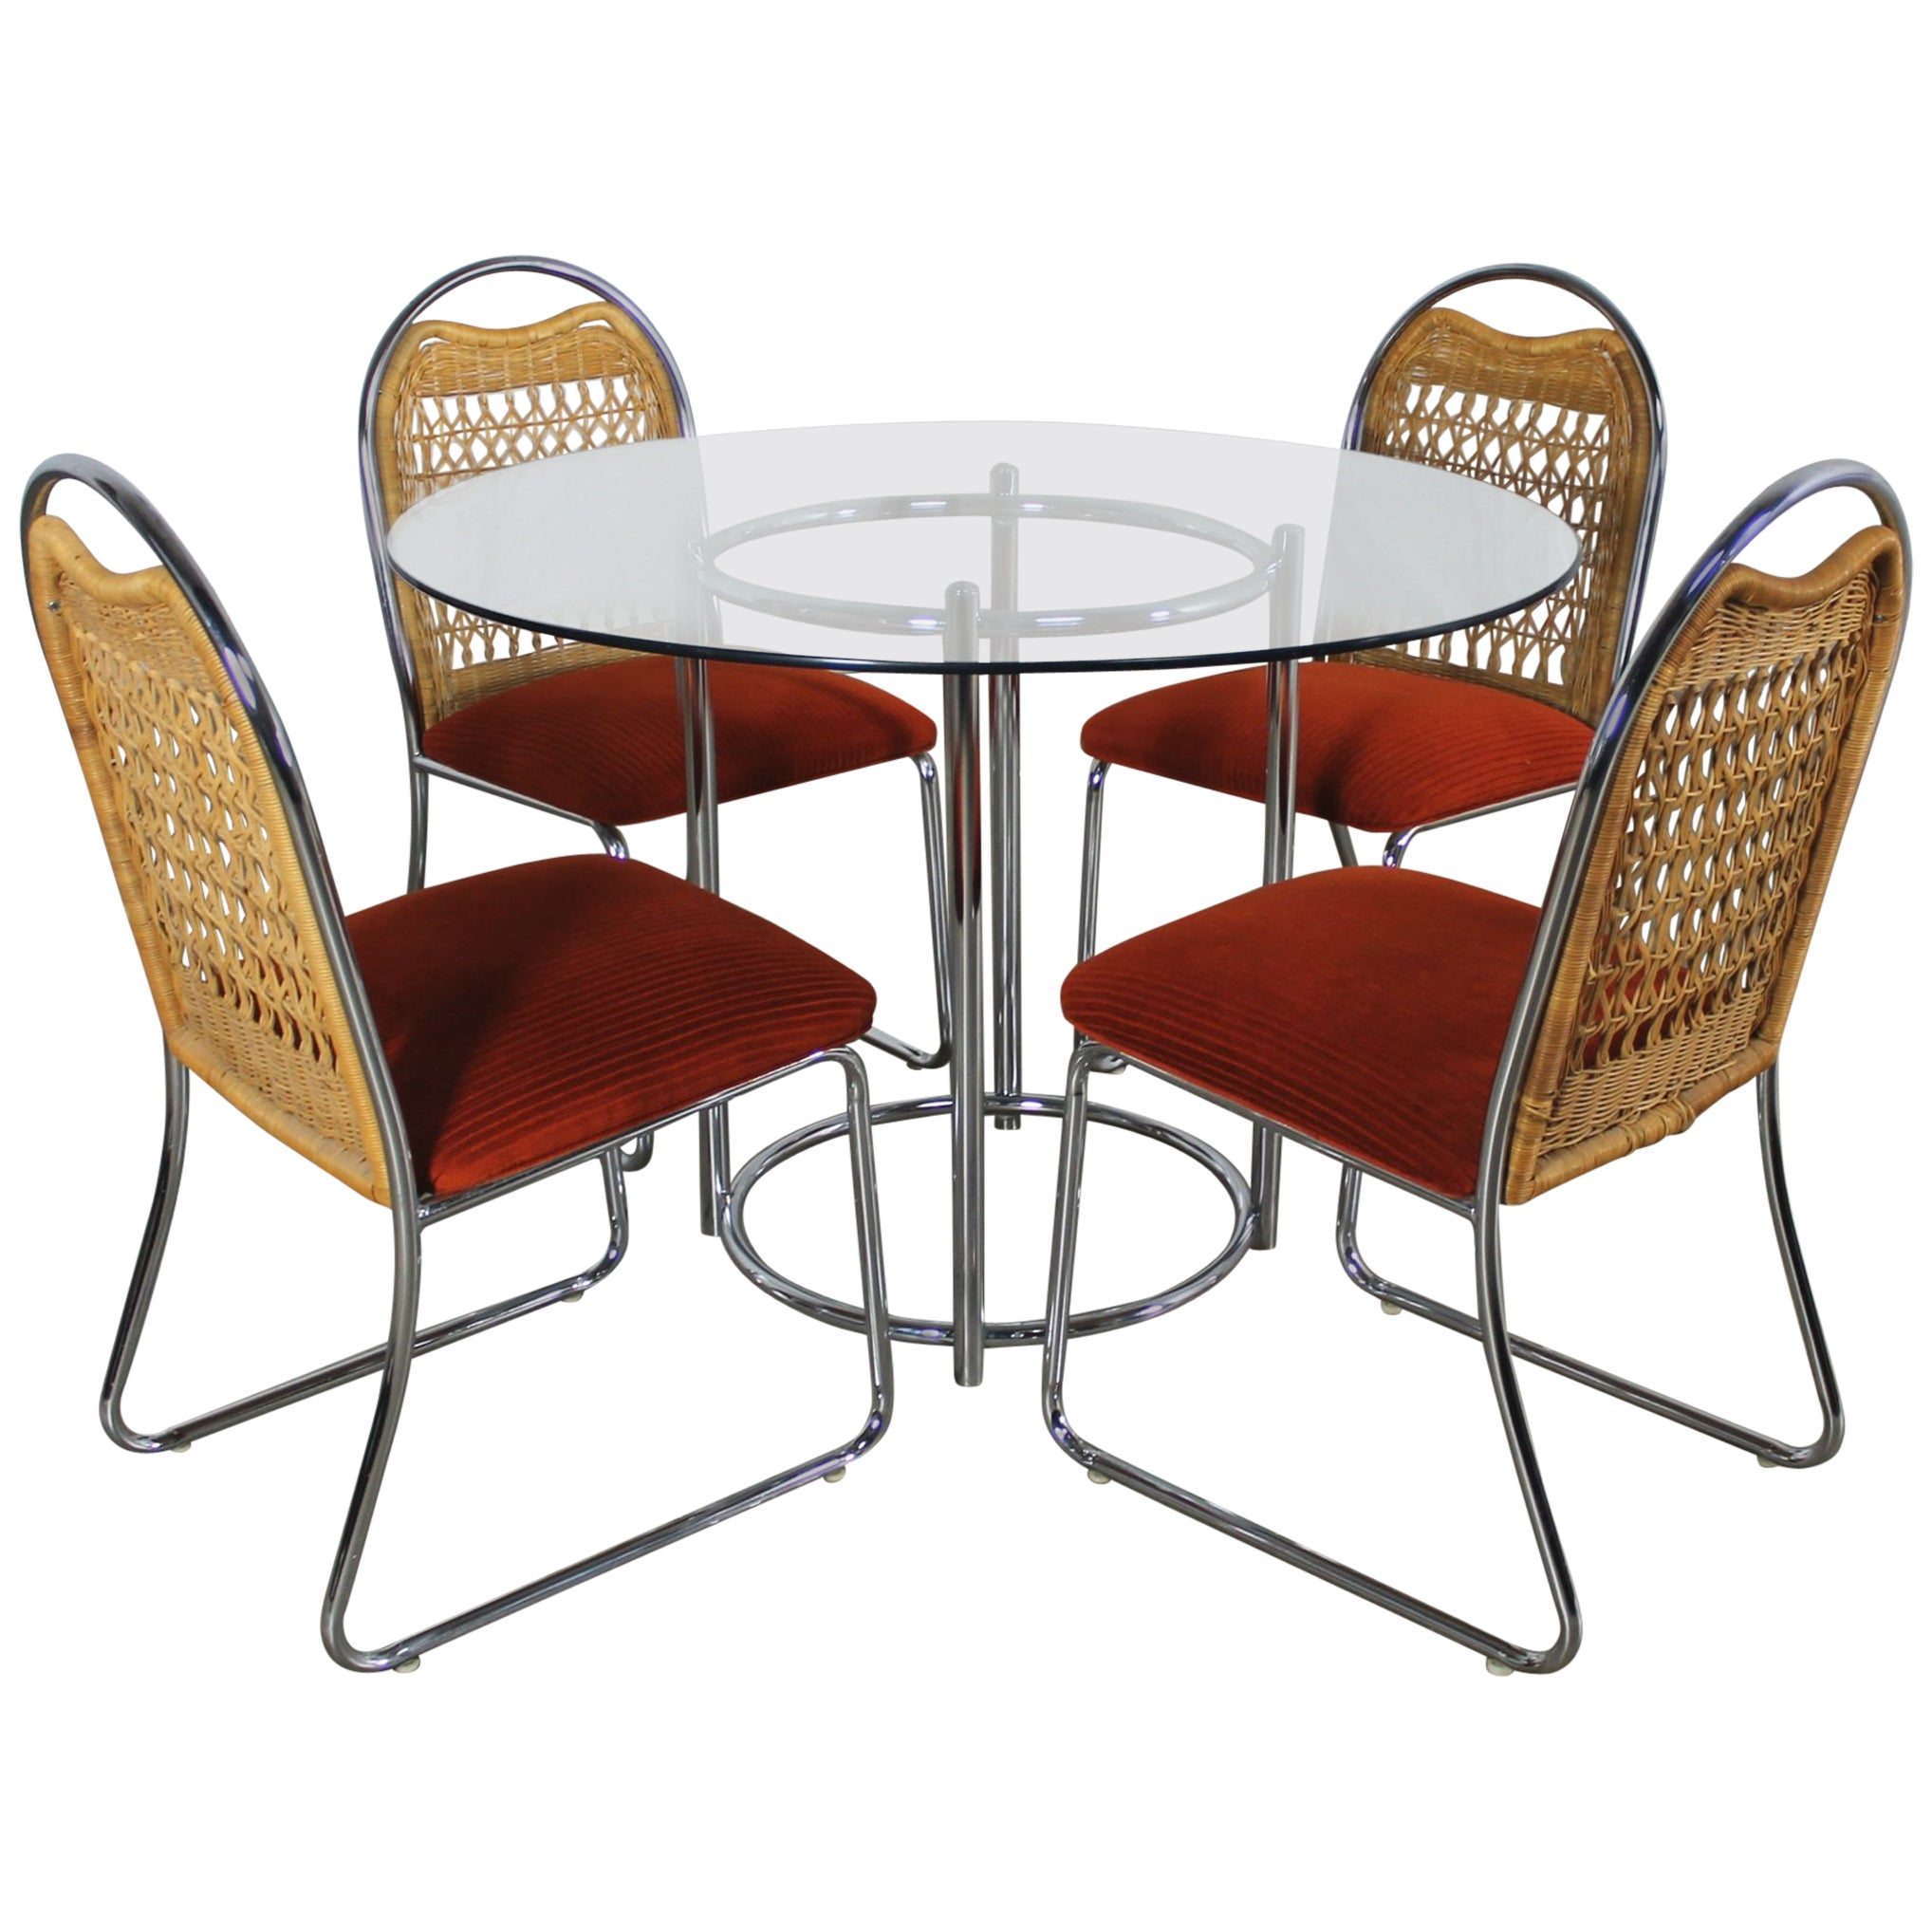 Mid-Century Daystrom Round Glass Chrome Dinette Table and Four Wicker Chairs